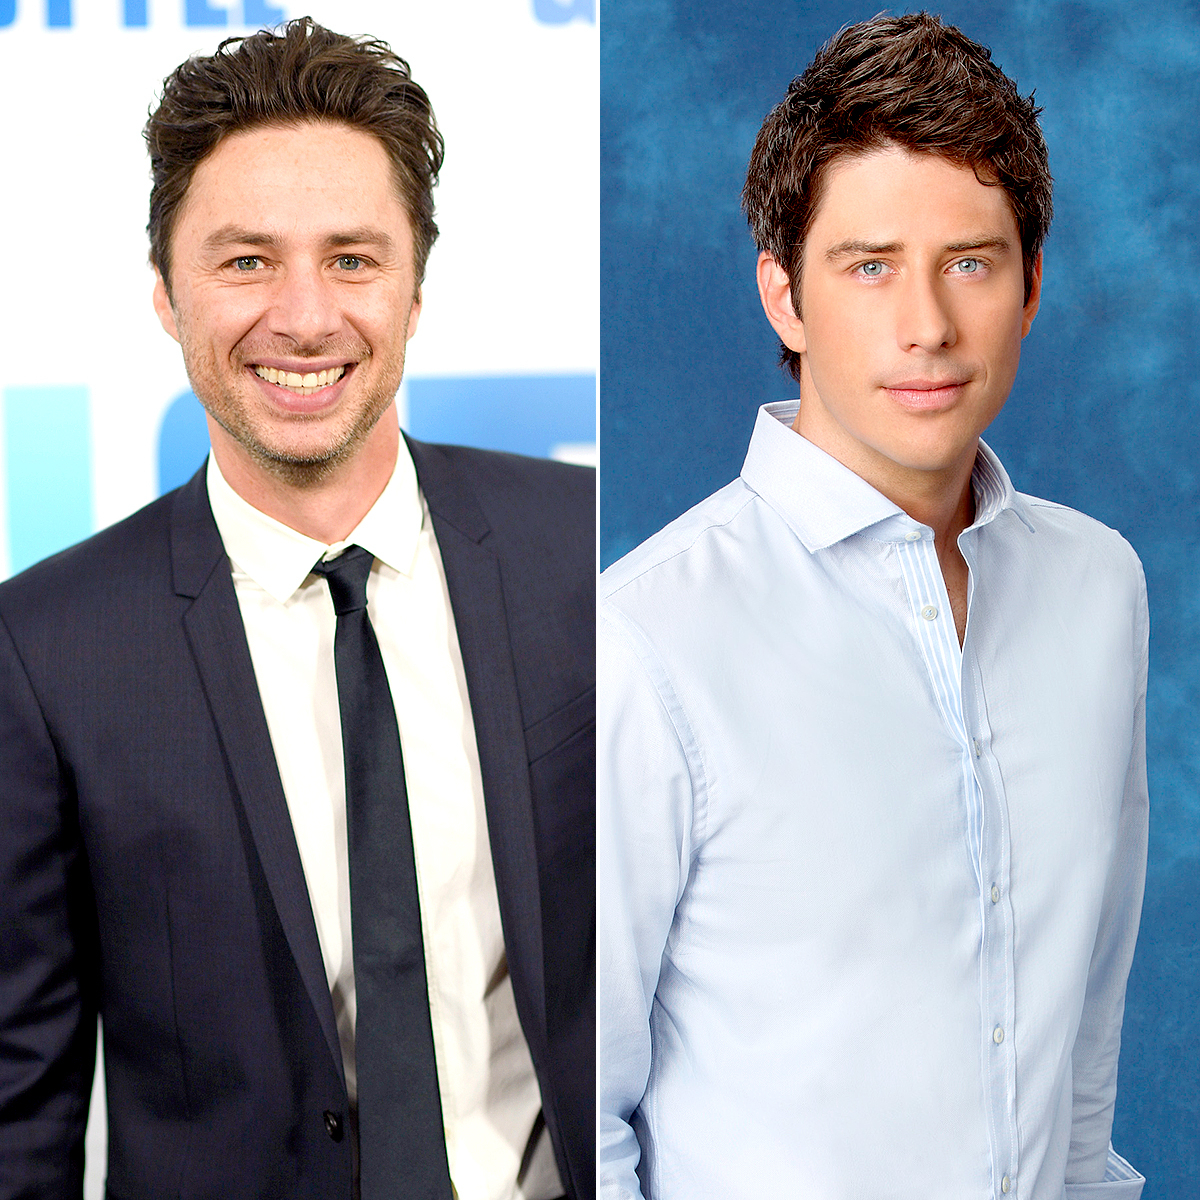 Zach Braff and Arie Luyendyk